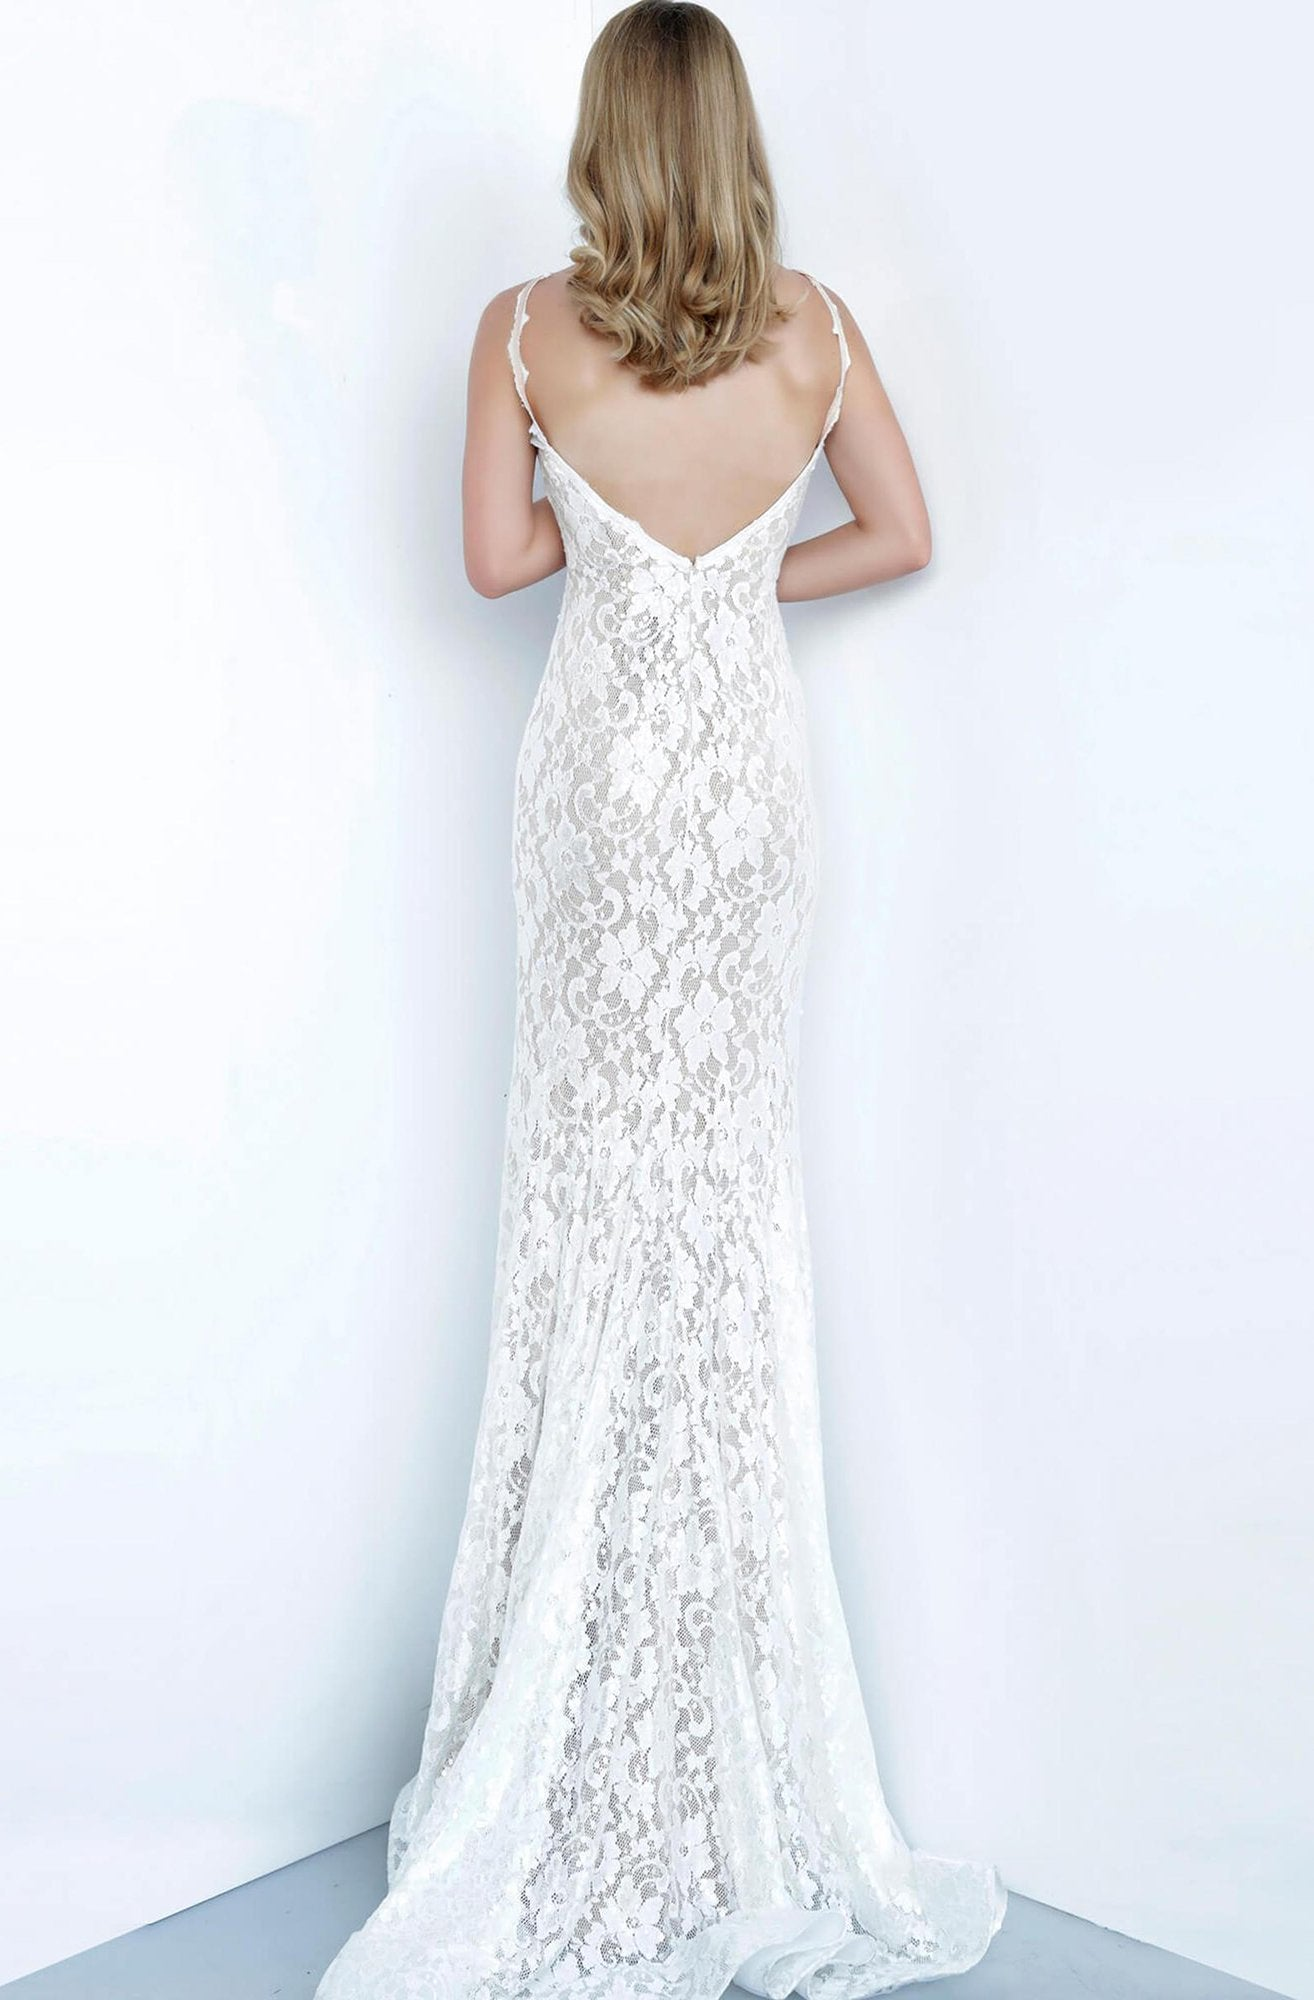 Jovani - 8081 Allover Lace Sleeveless Halter Neck Fitted Prom Dress In White